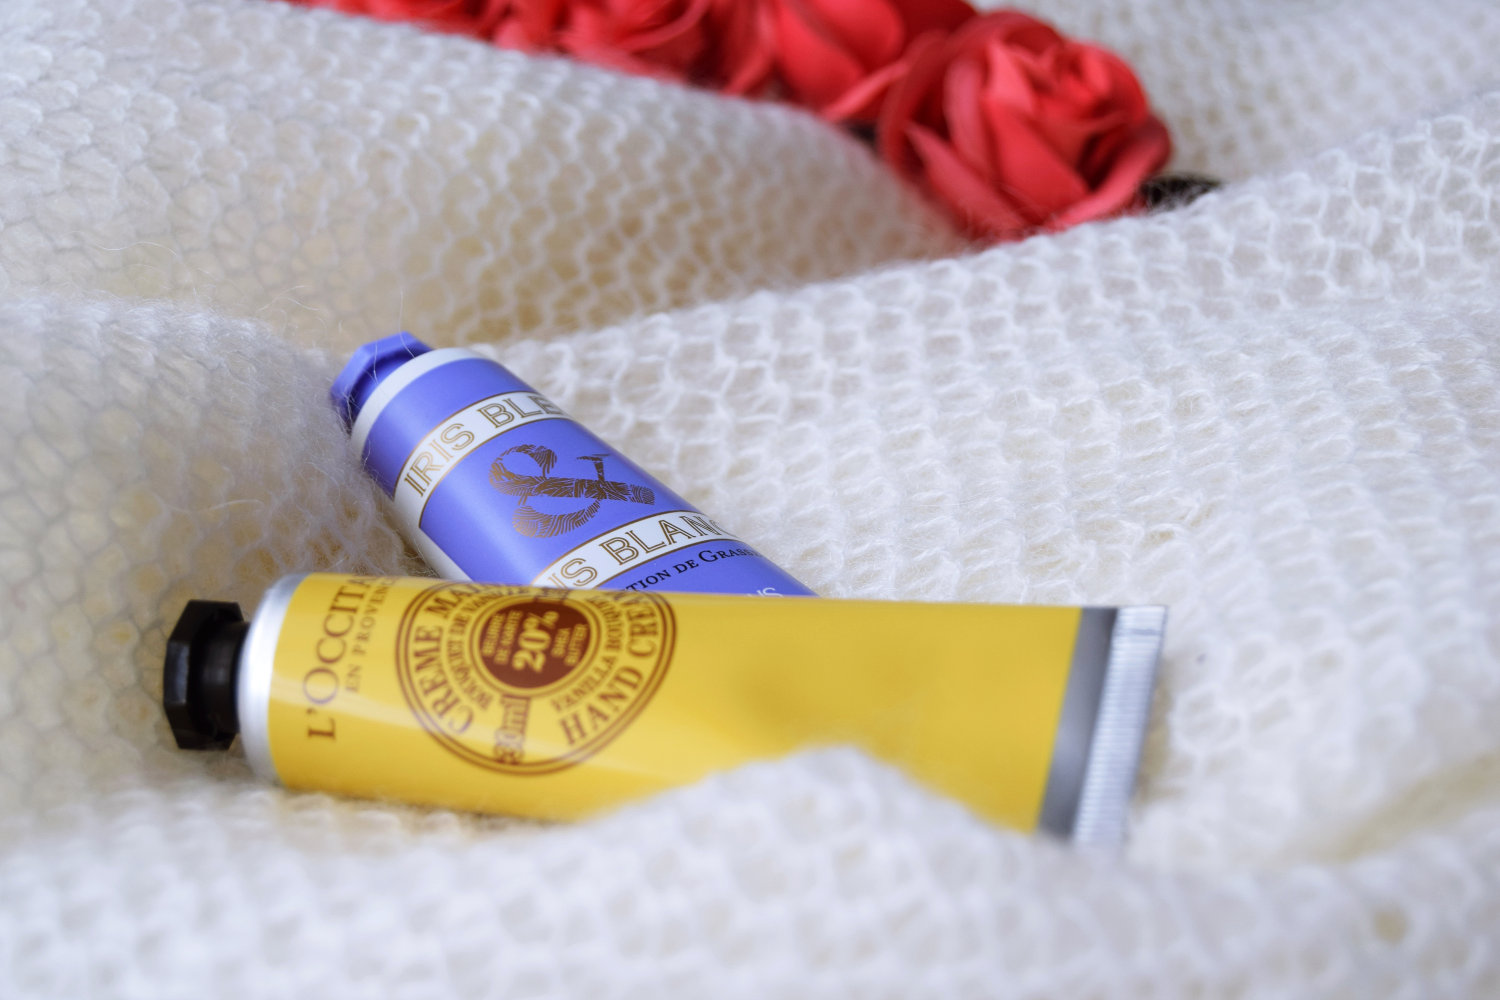 Loccitane_hand_creams_Zalabell_review_5